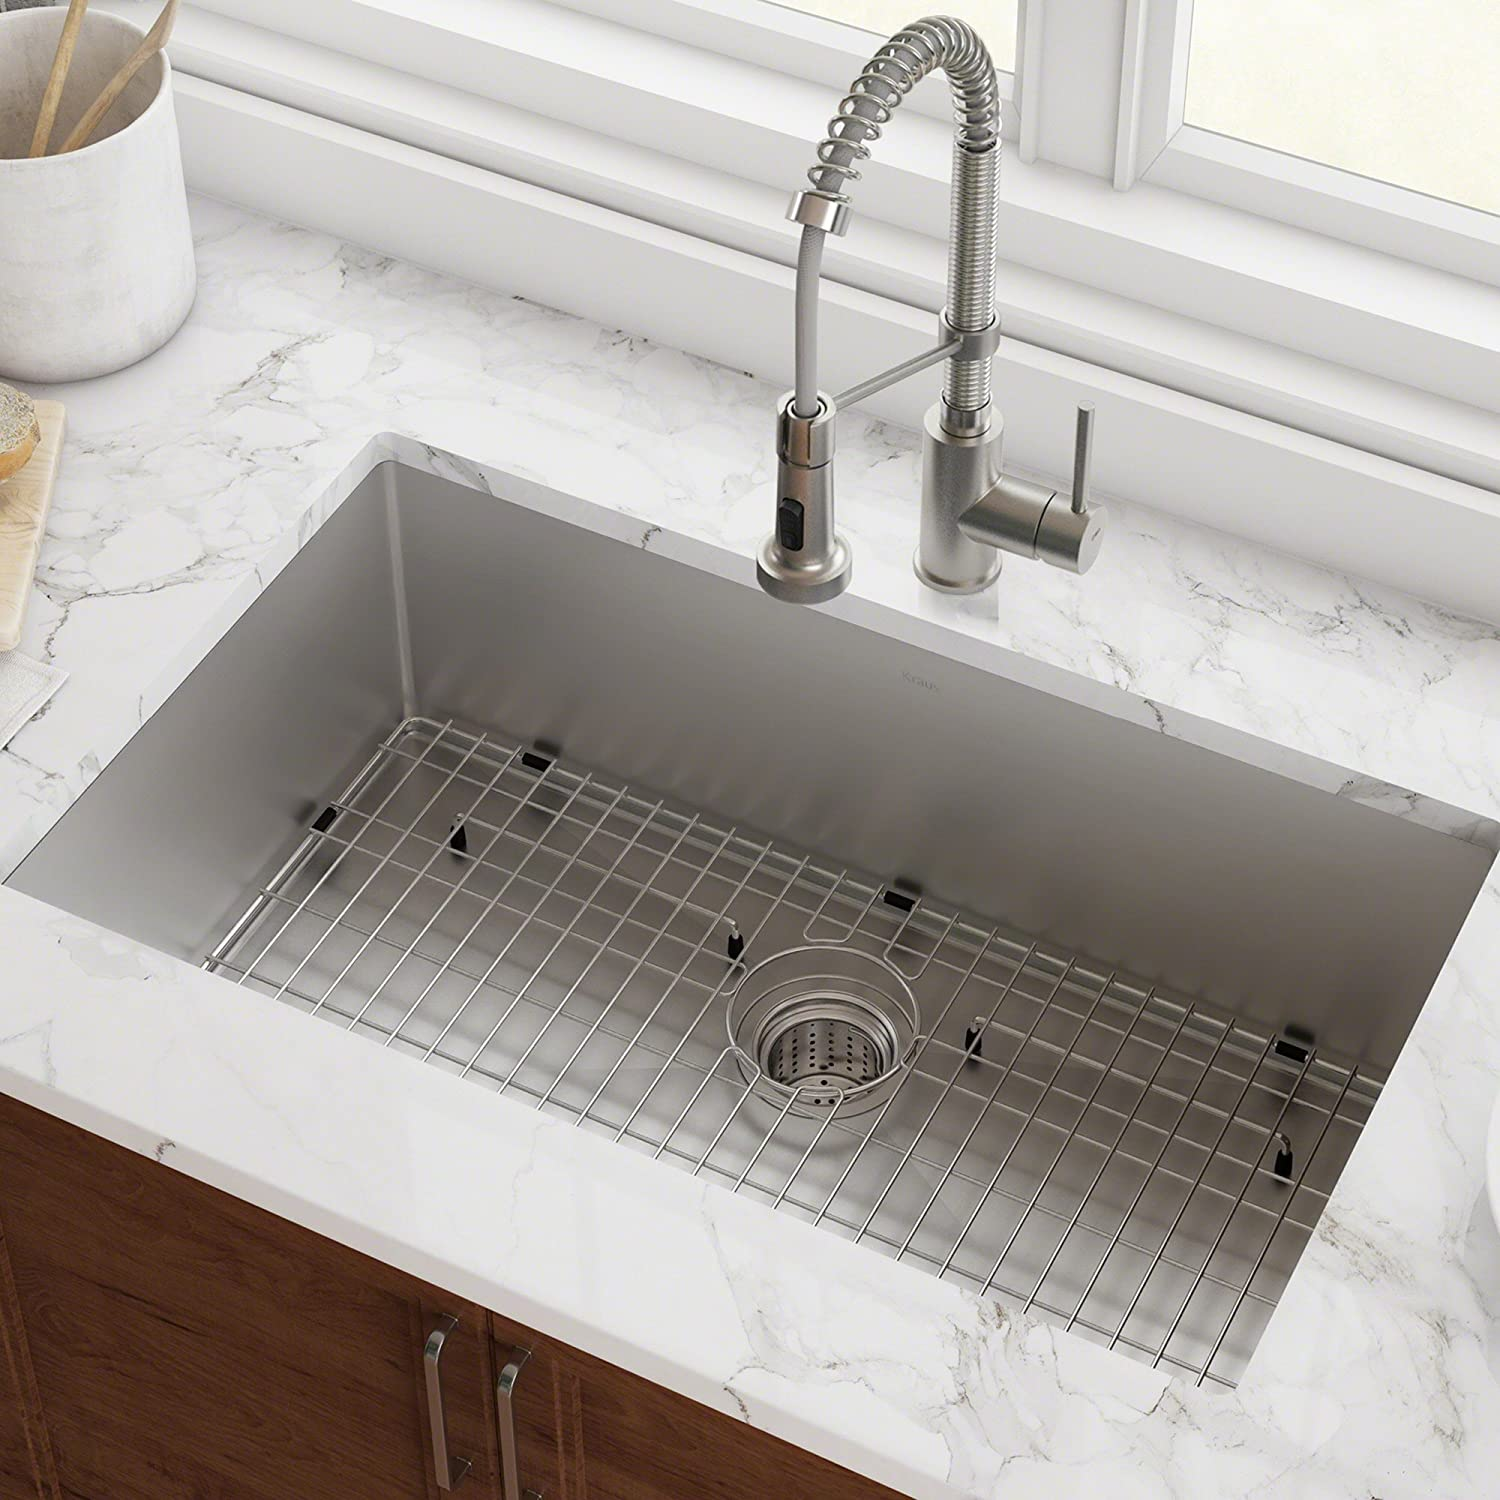 Kraus Single Bowl Kitchen Sink